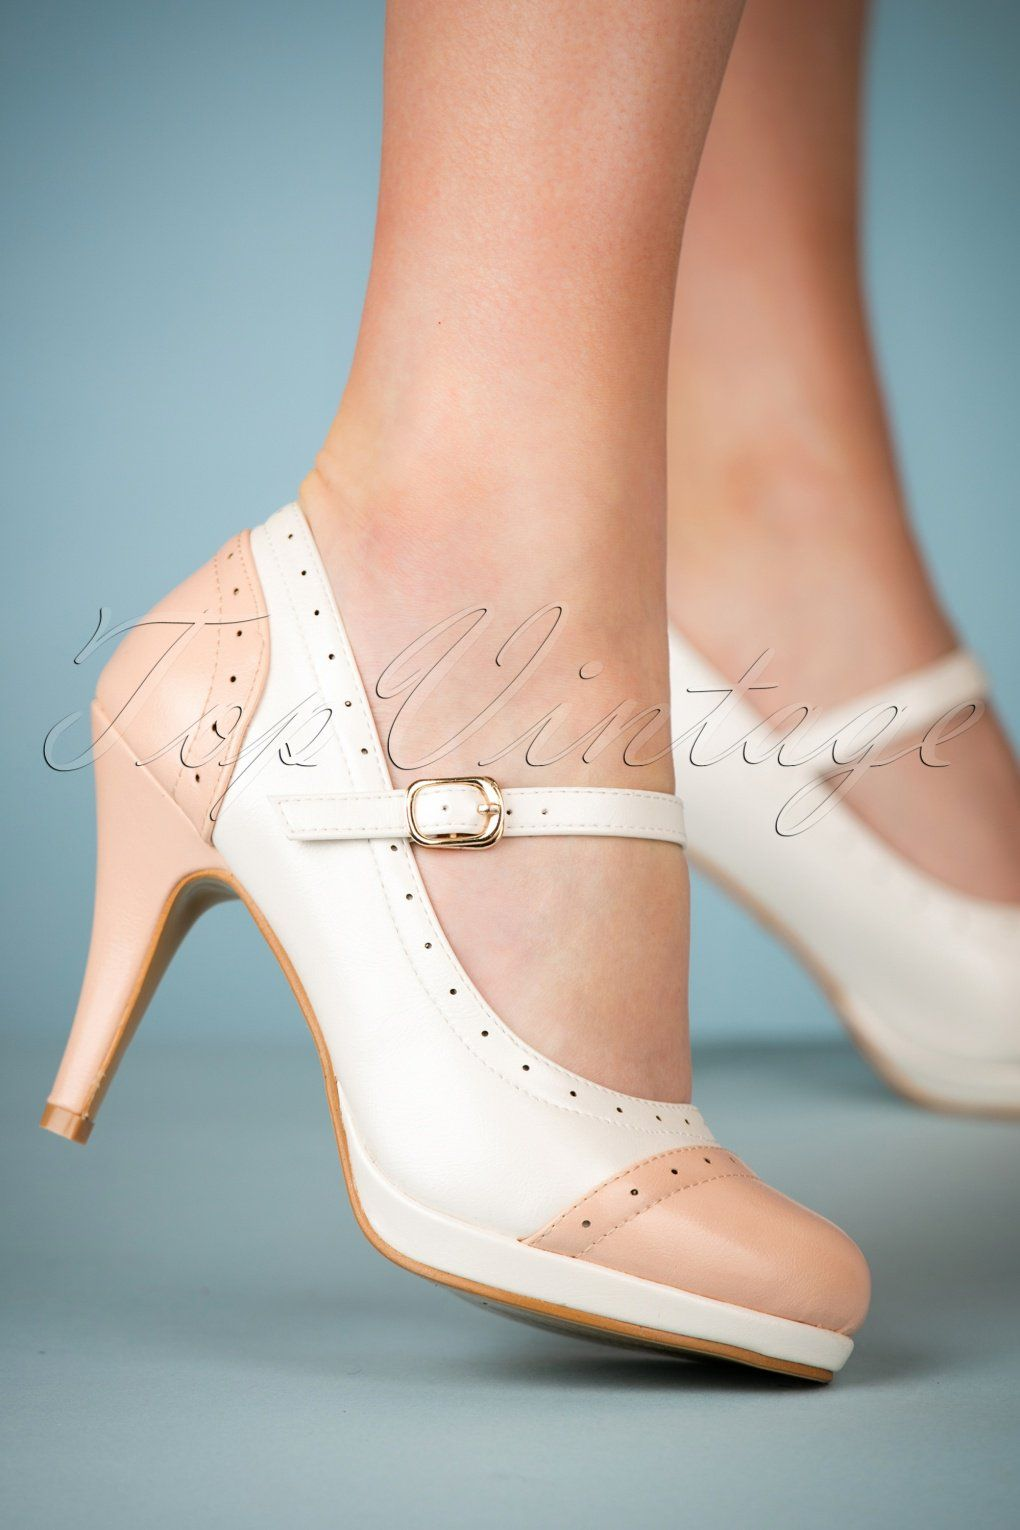 d1e23f24d3c68 Treat yourself with these deliciously looking 50s Sabine High Heeled Pumps  in White!We